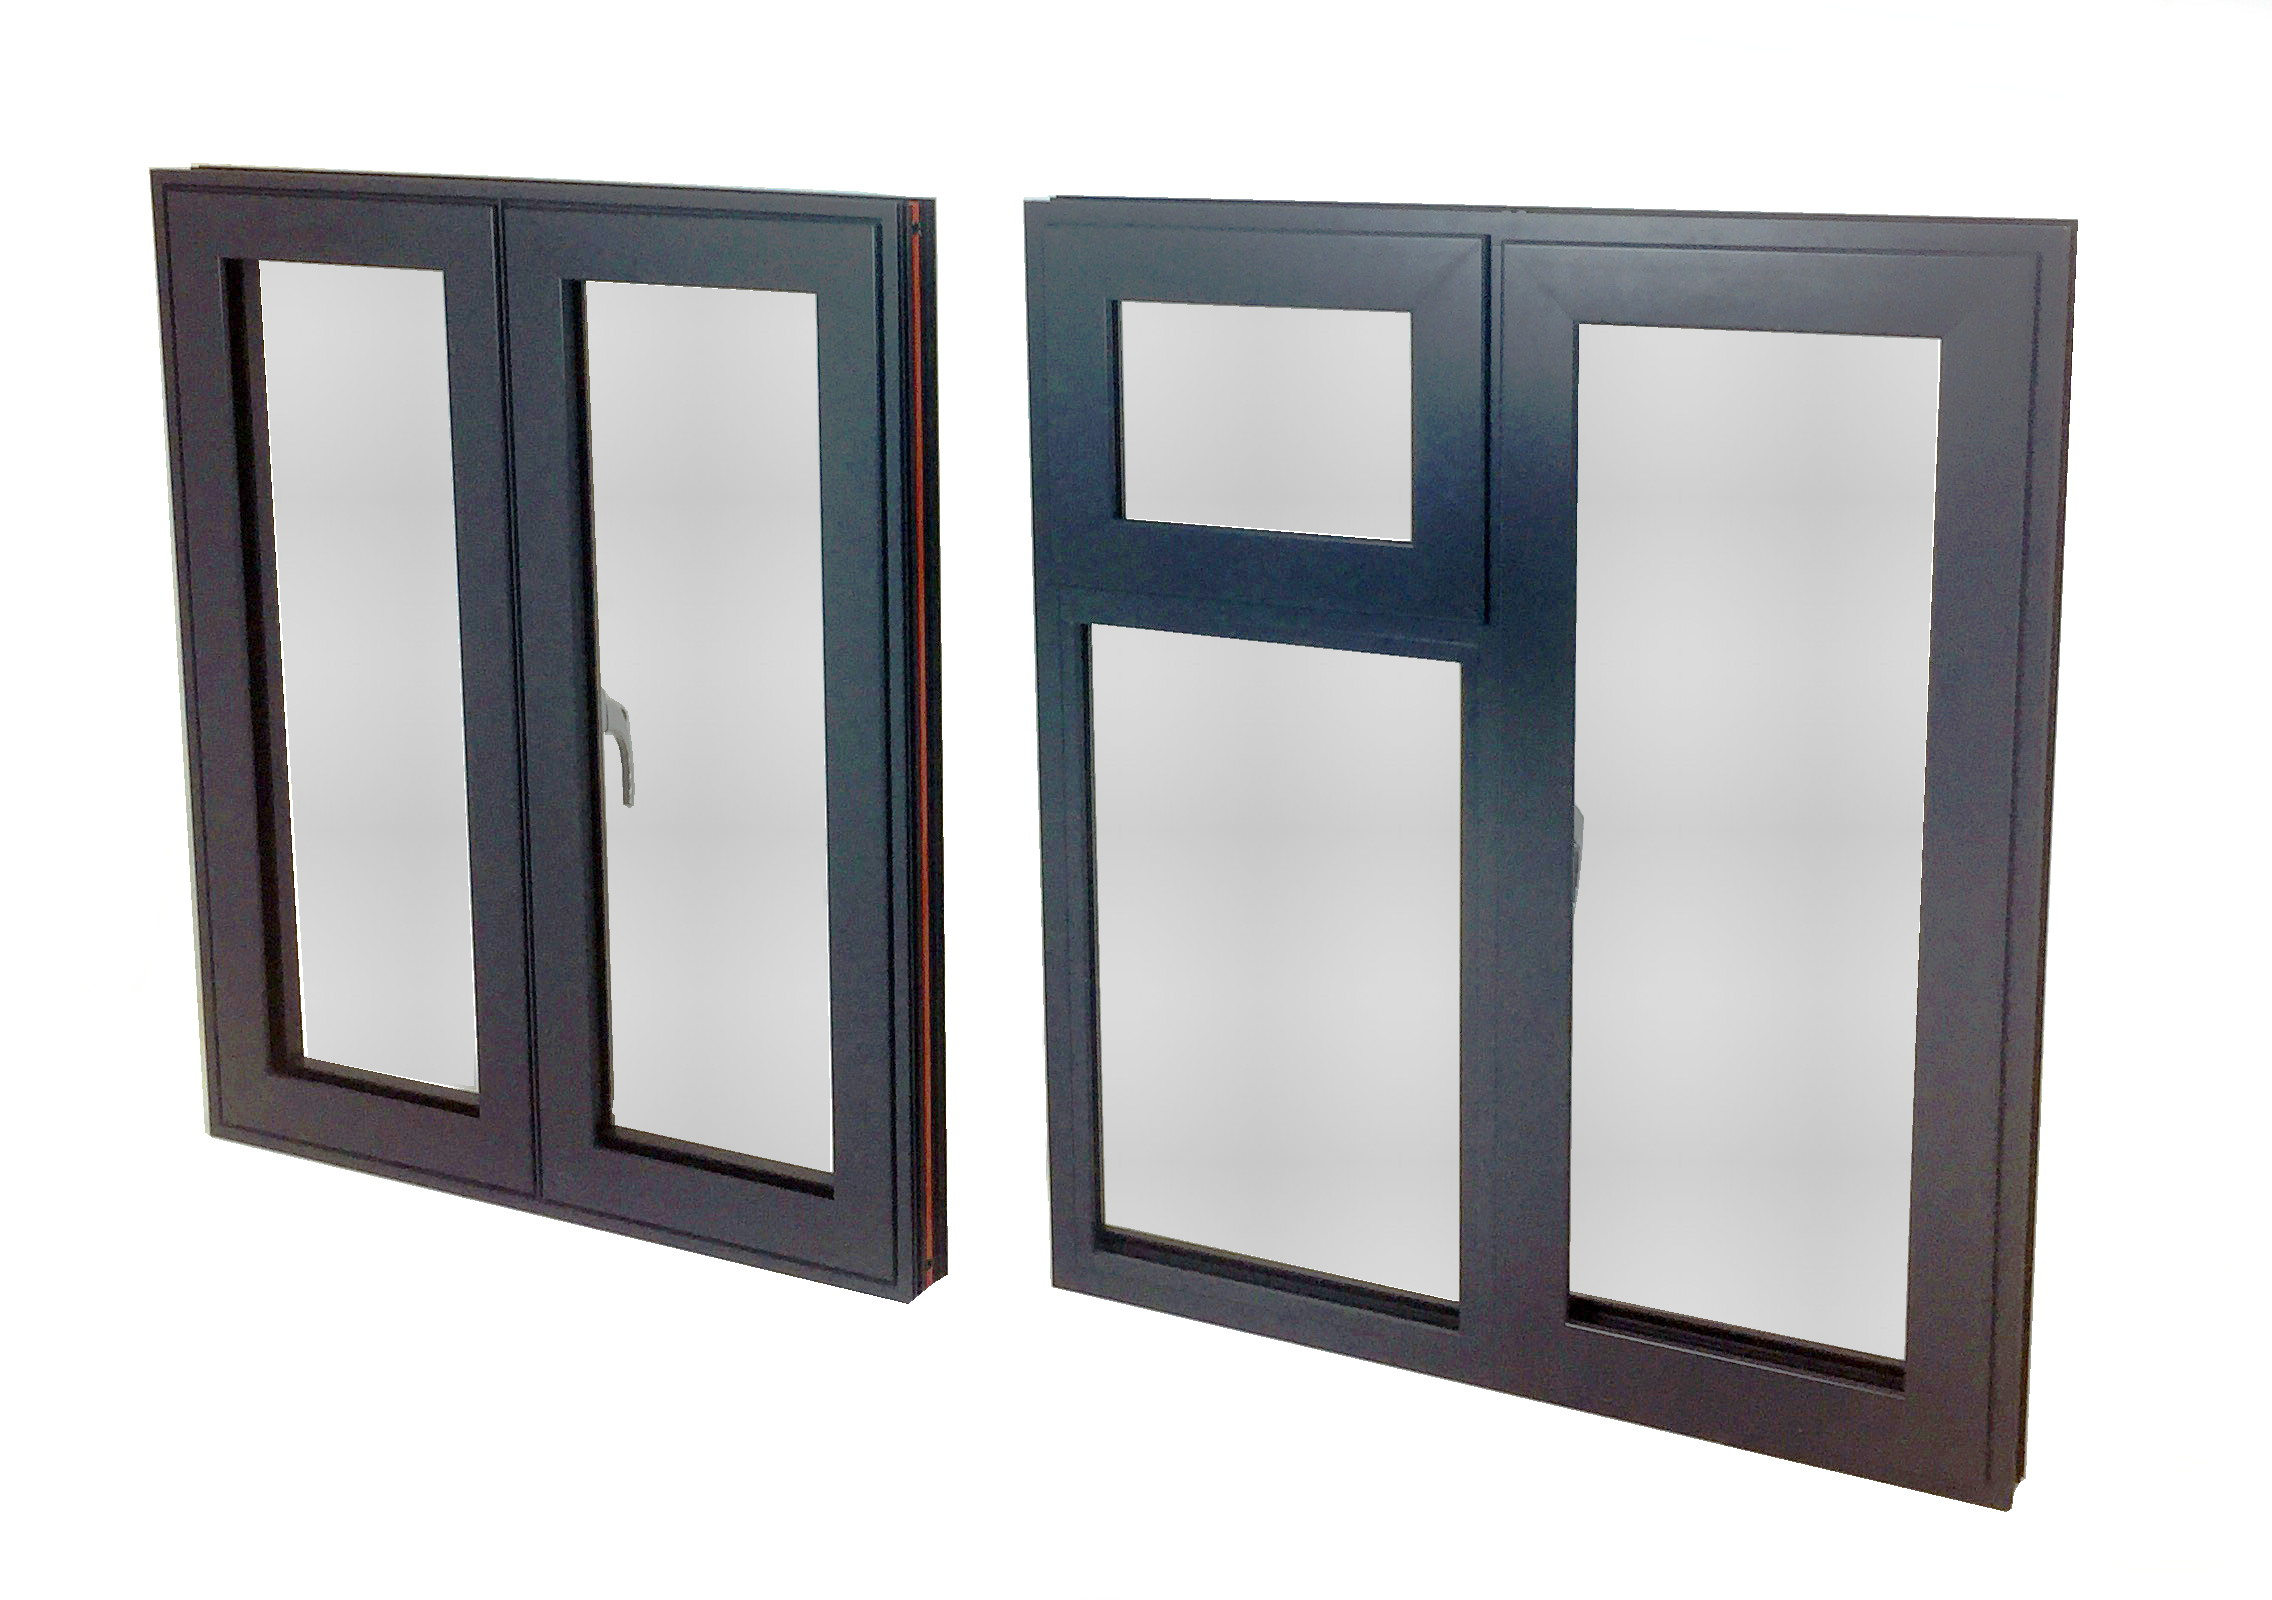 Warmcore Aluminium Windows Double and Triple Glazed Manufactured To Order